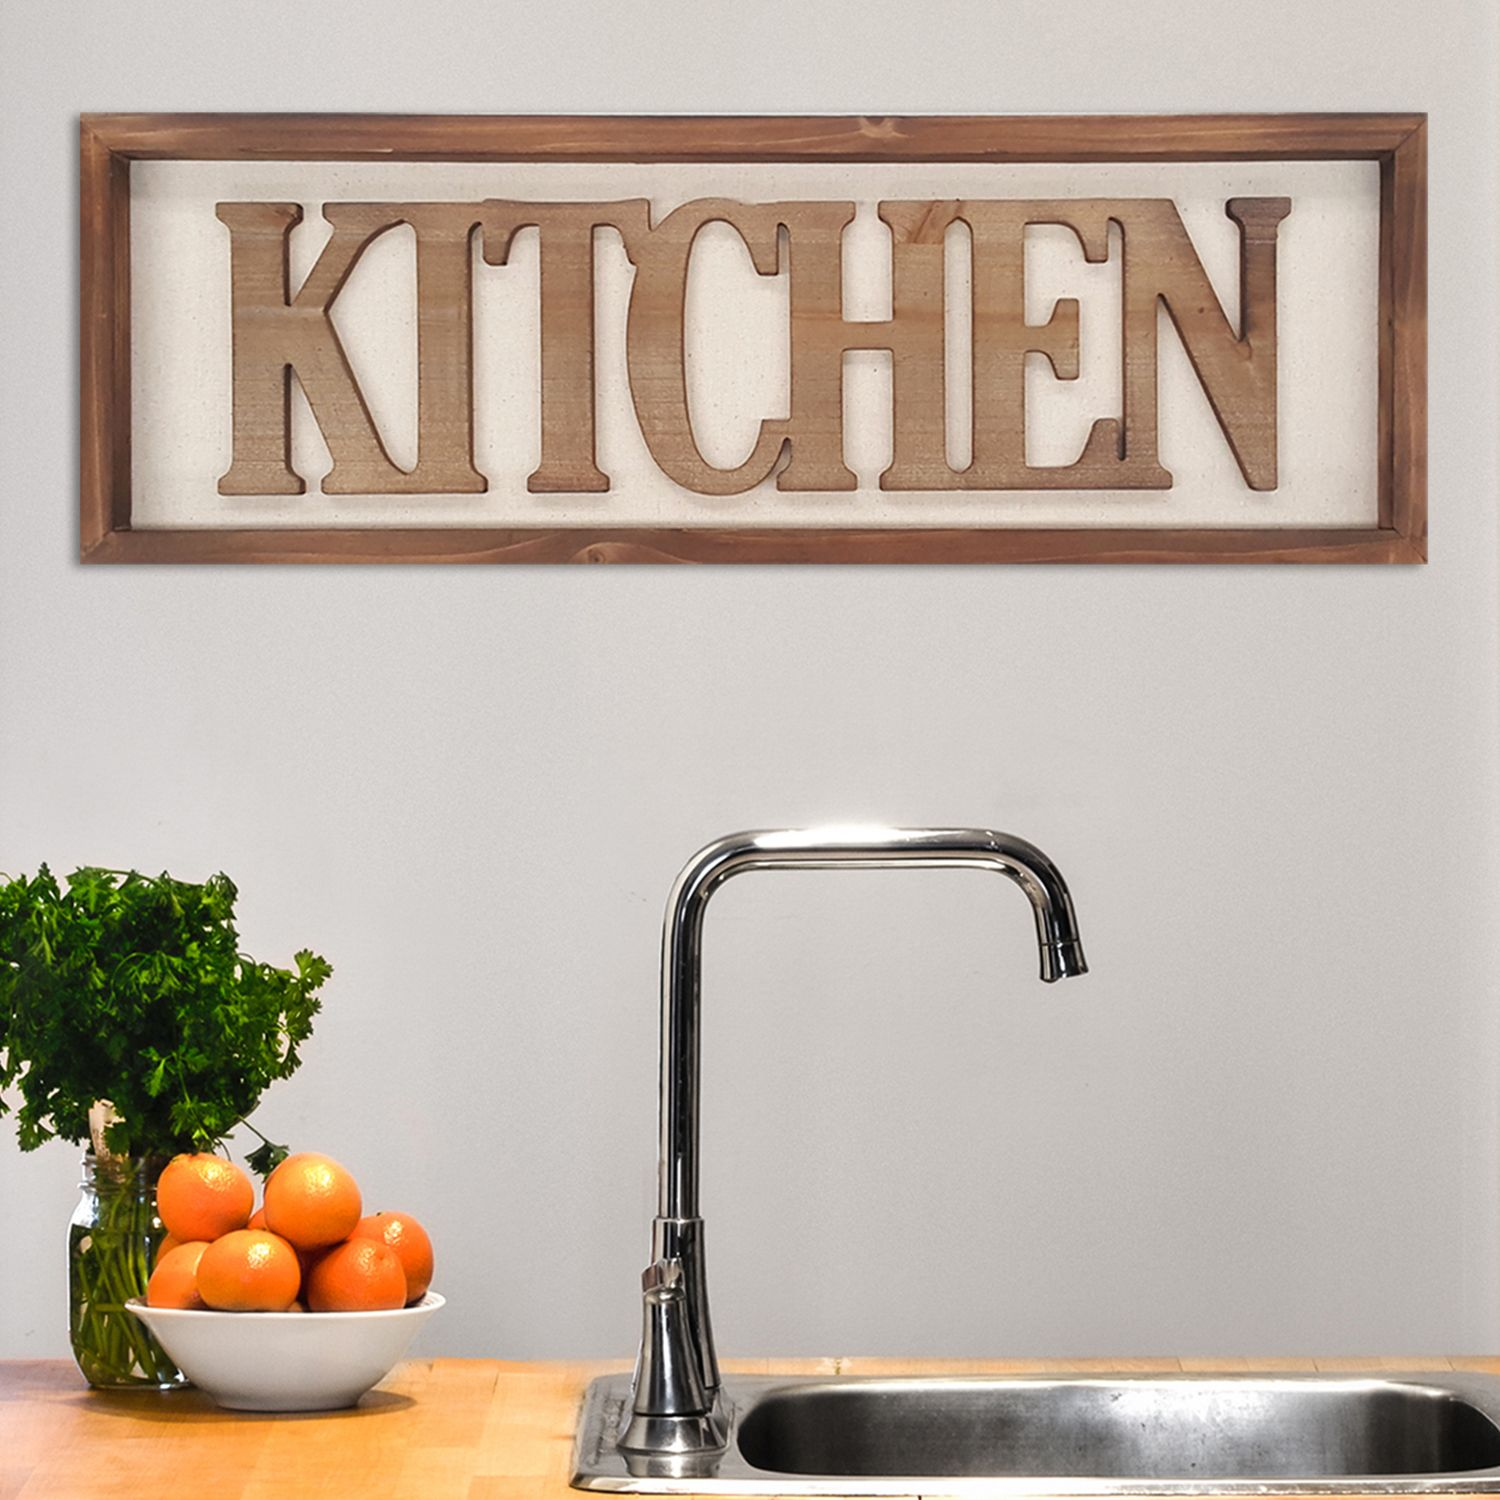 Stratton Home Decor U0027Kitchenu0027 Wall Art